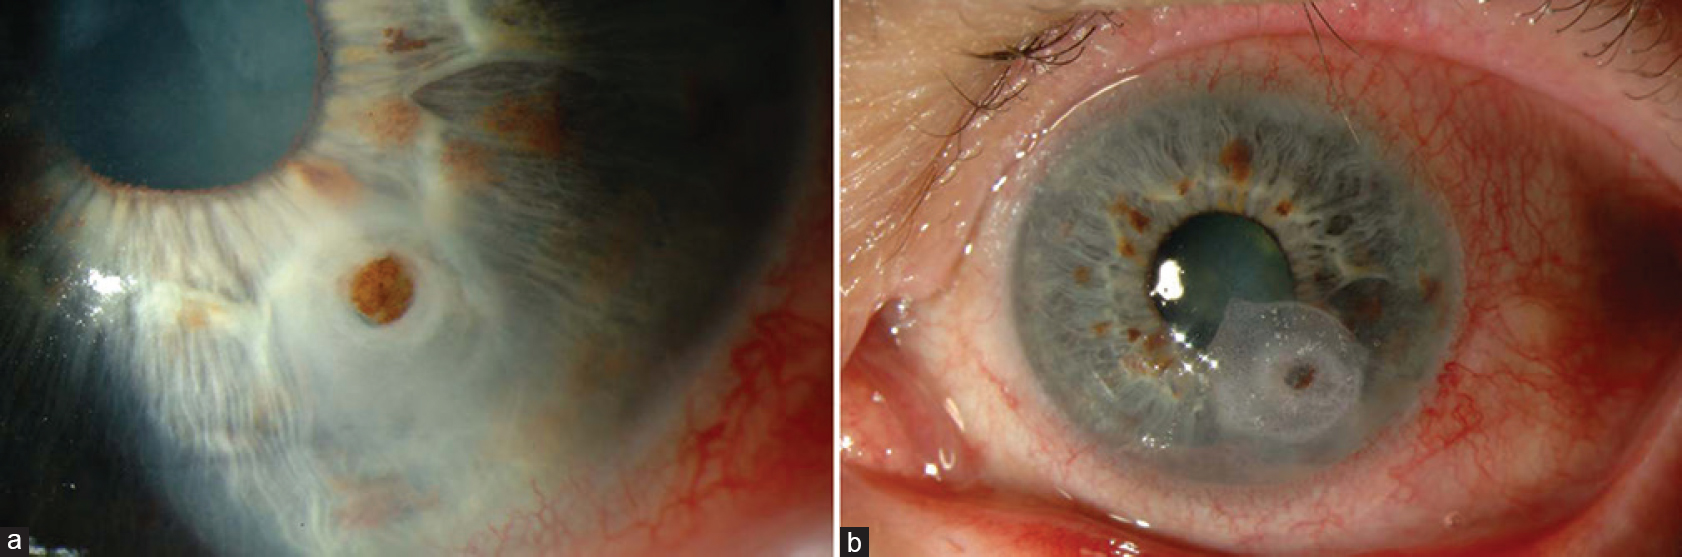 Figure 1: (a) Small corneal perforation prior to the application of glue (b) Corneal perforation sealed using cyanoacrylate glue